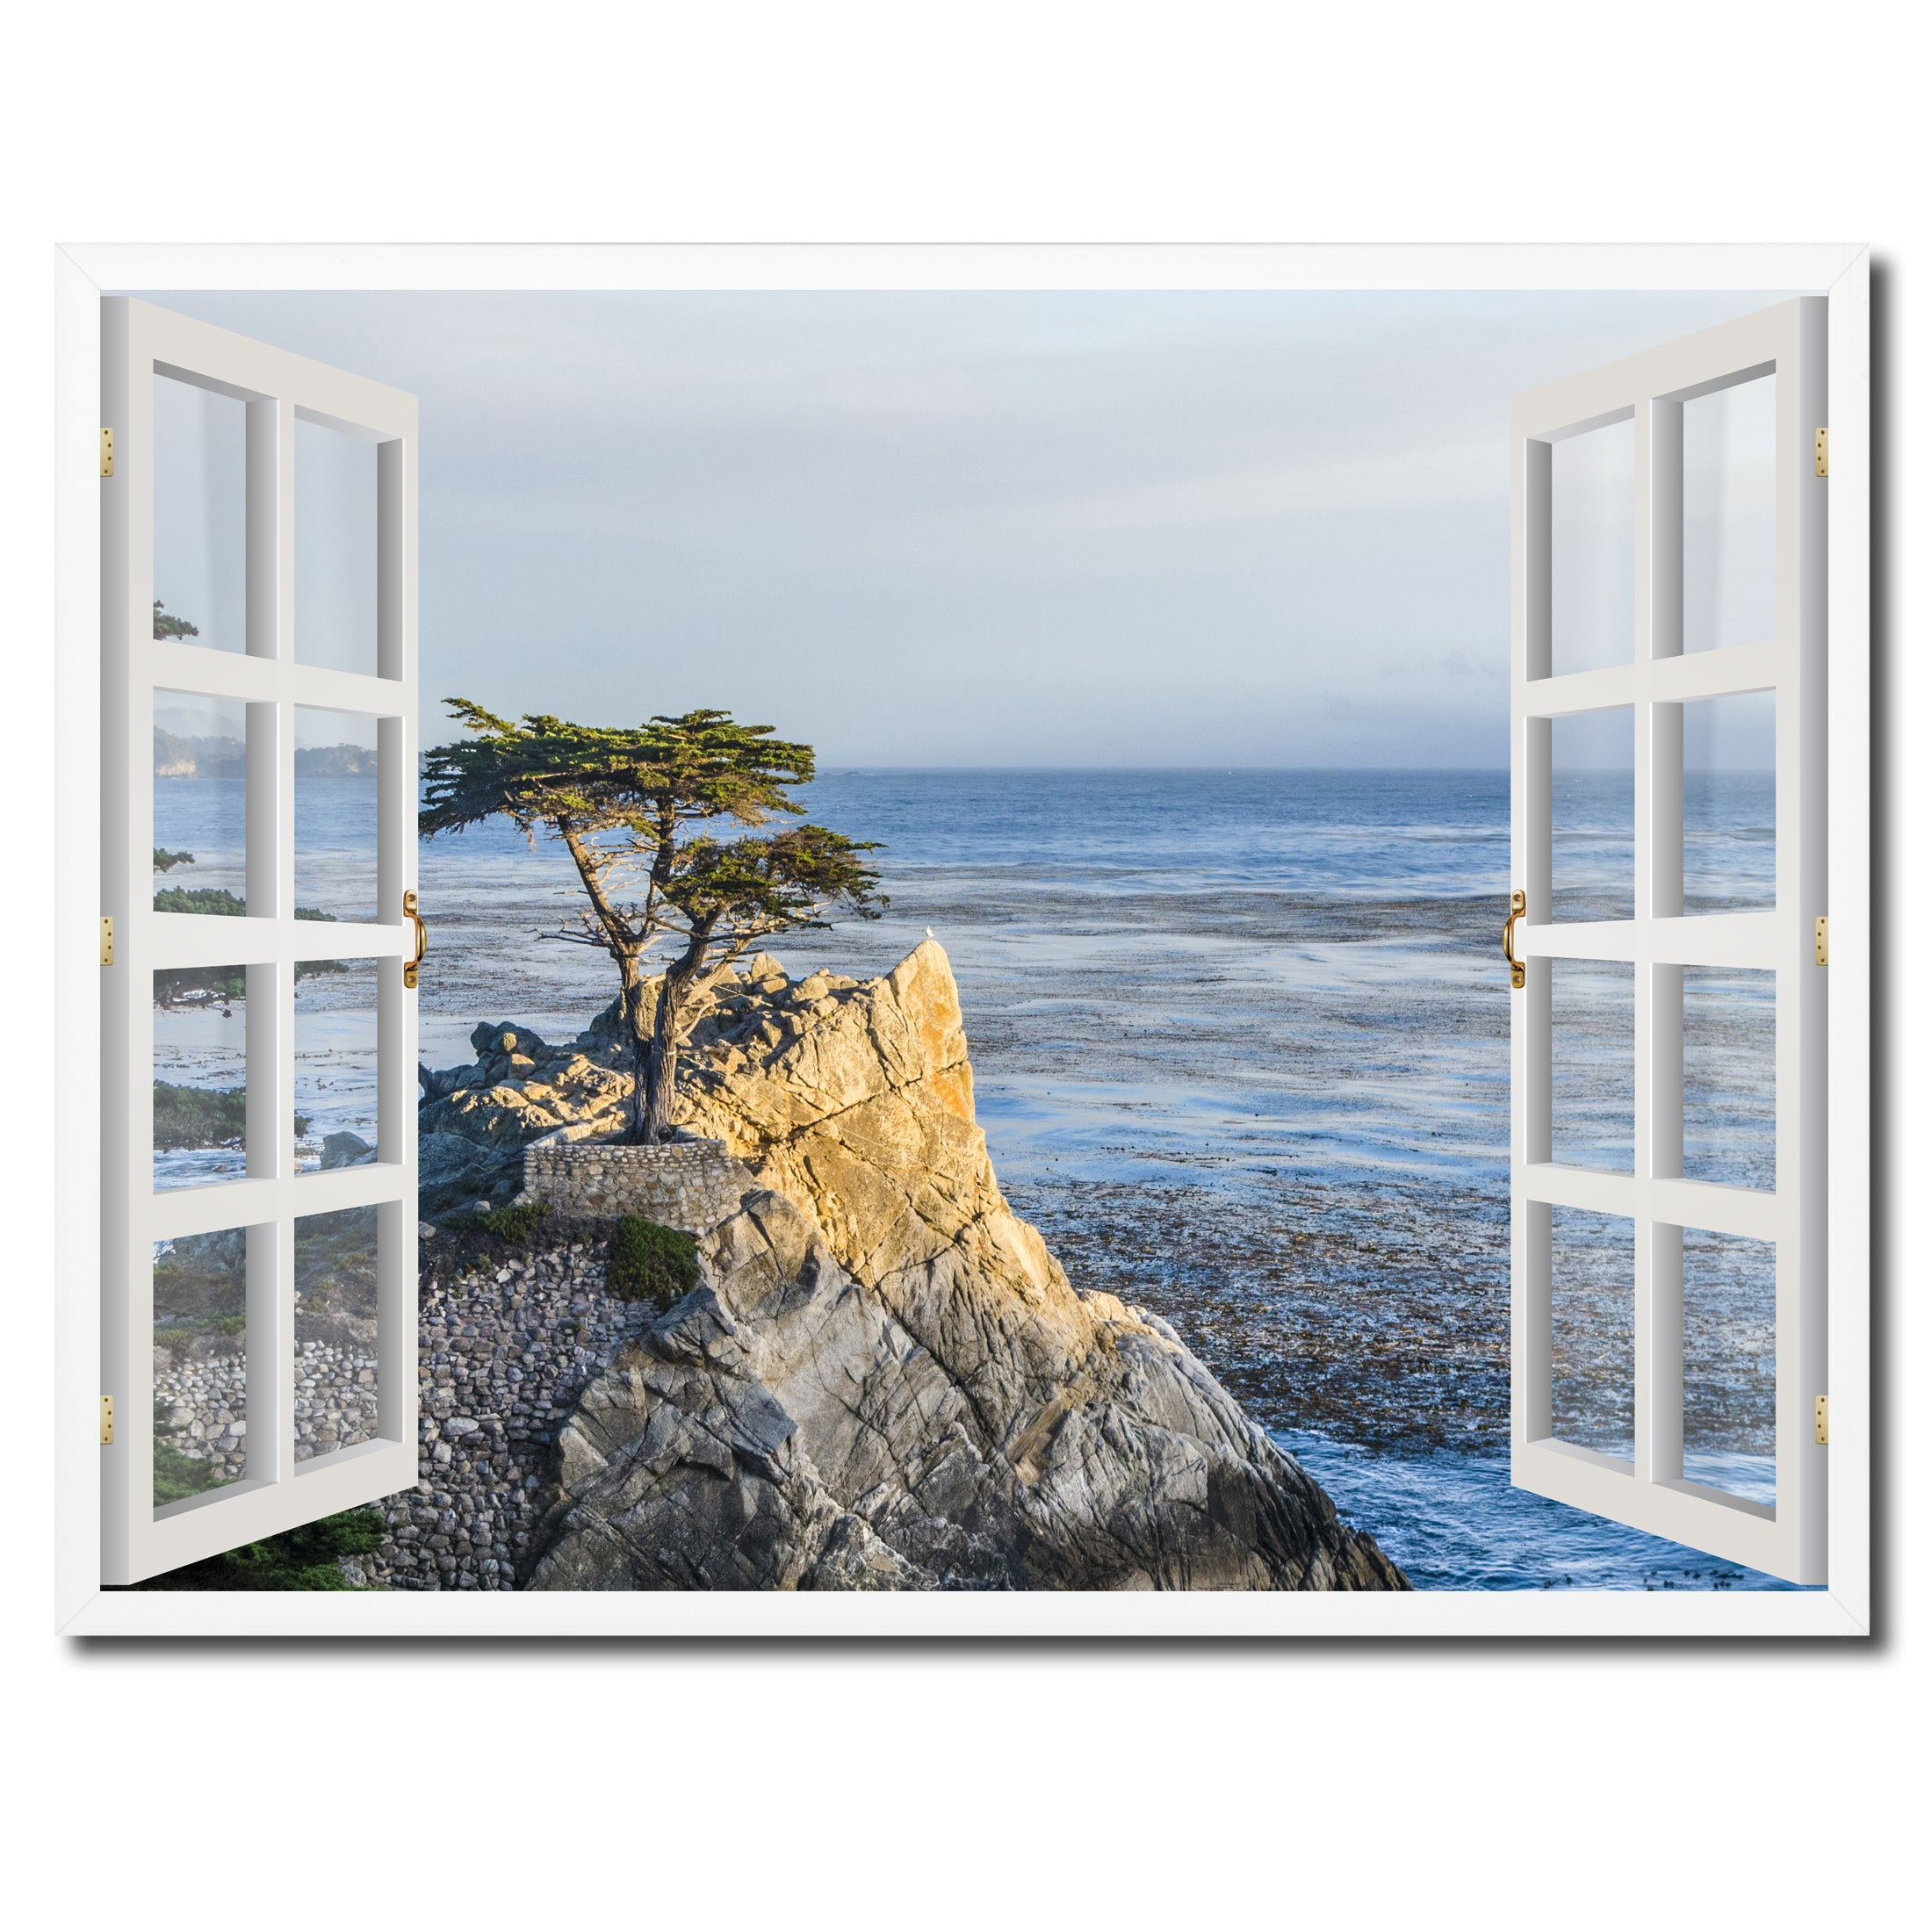 Monterey Beach View Picture French Window Framed Canvas Print Home Decor Wall Art Collection  sc 1 st  SpotColorArt & Monterey Beach View Picture Window Wall Art Home Decor Gift Ideas ...